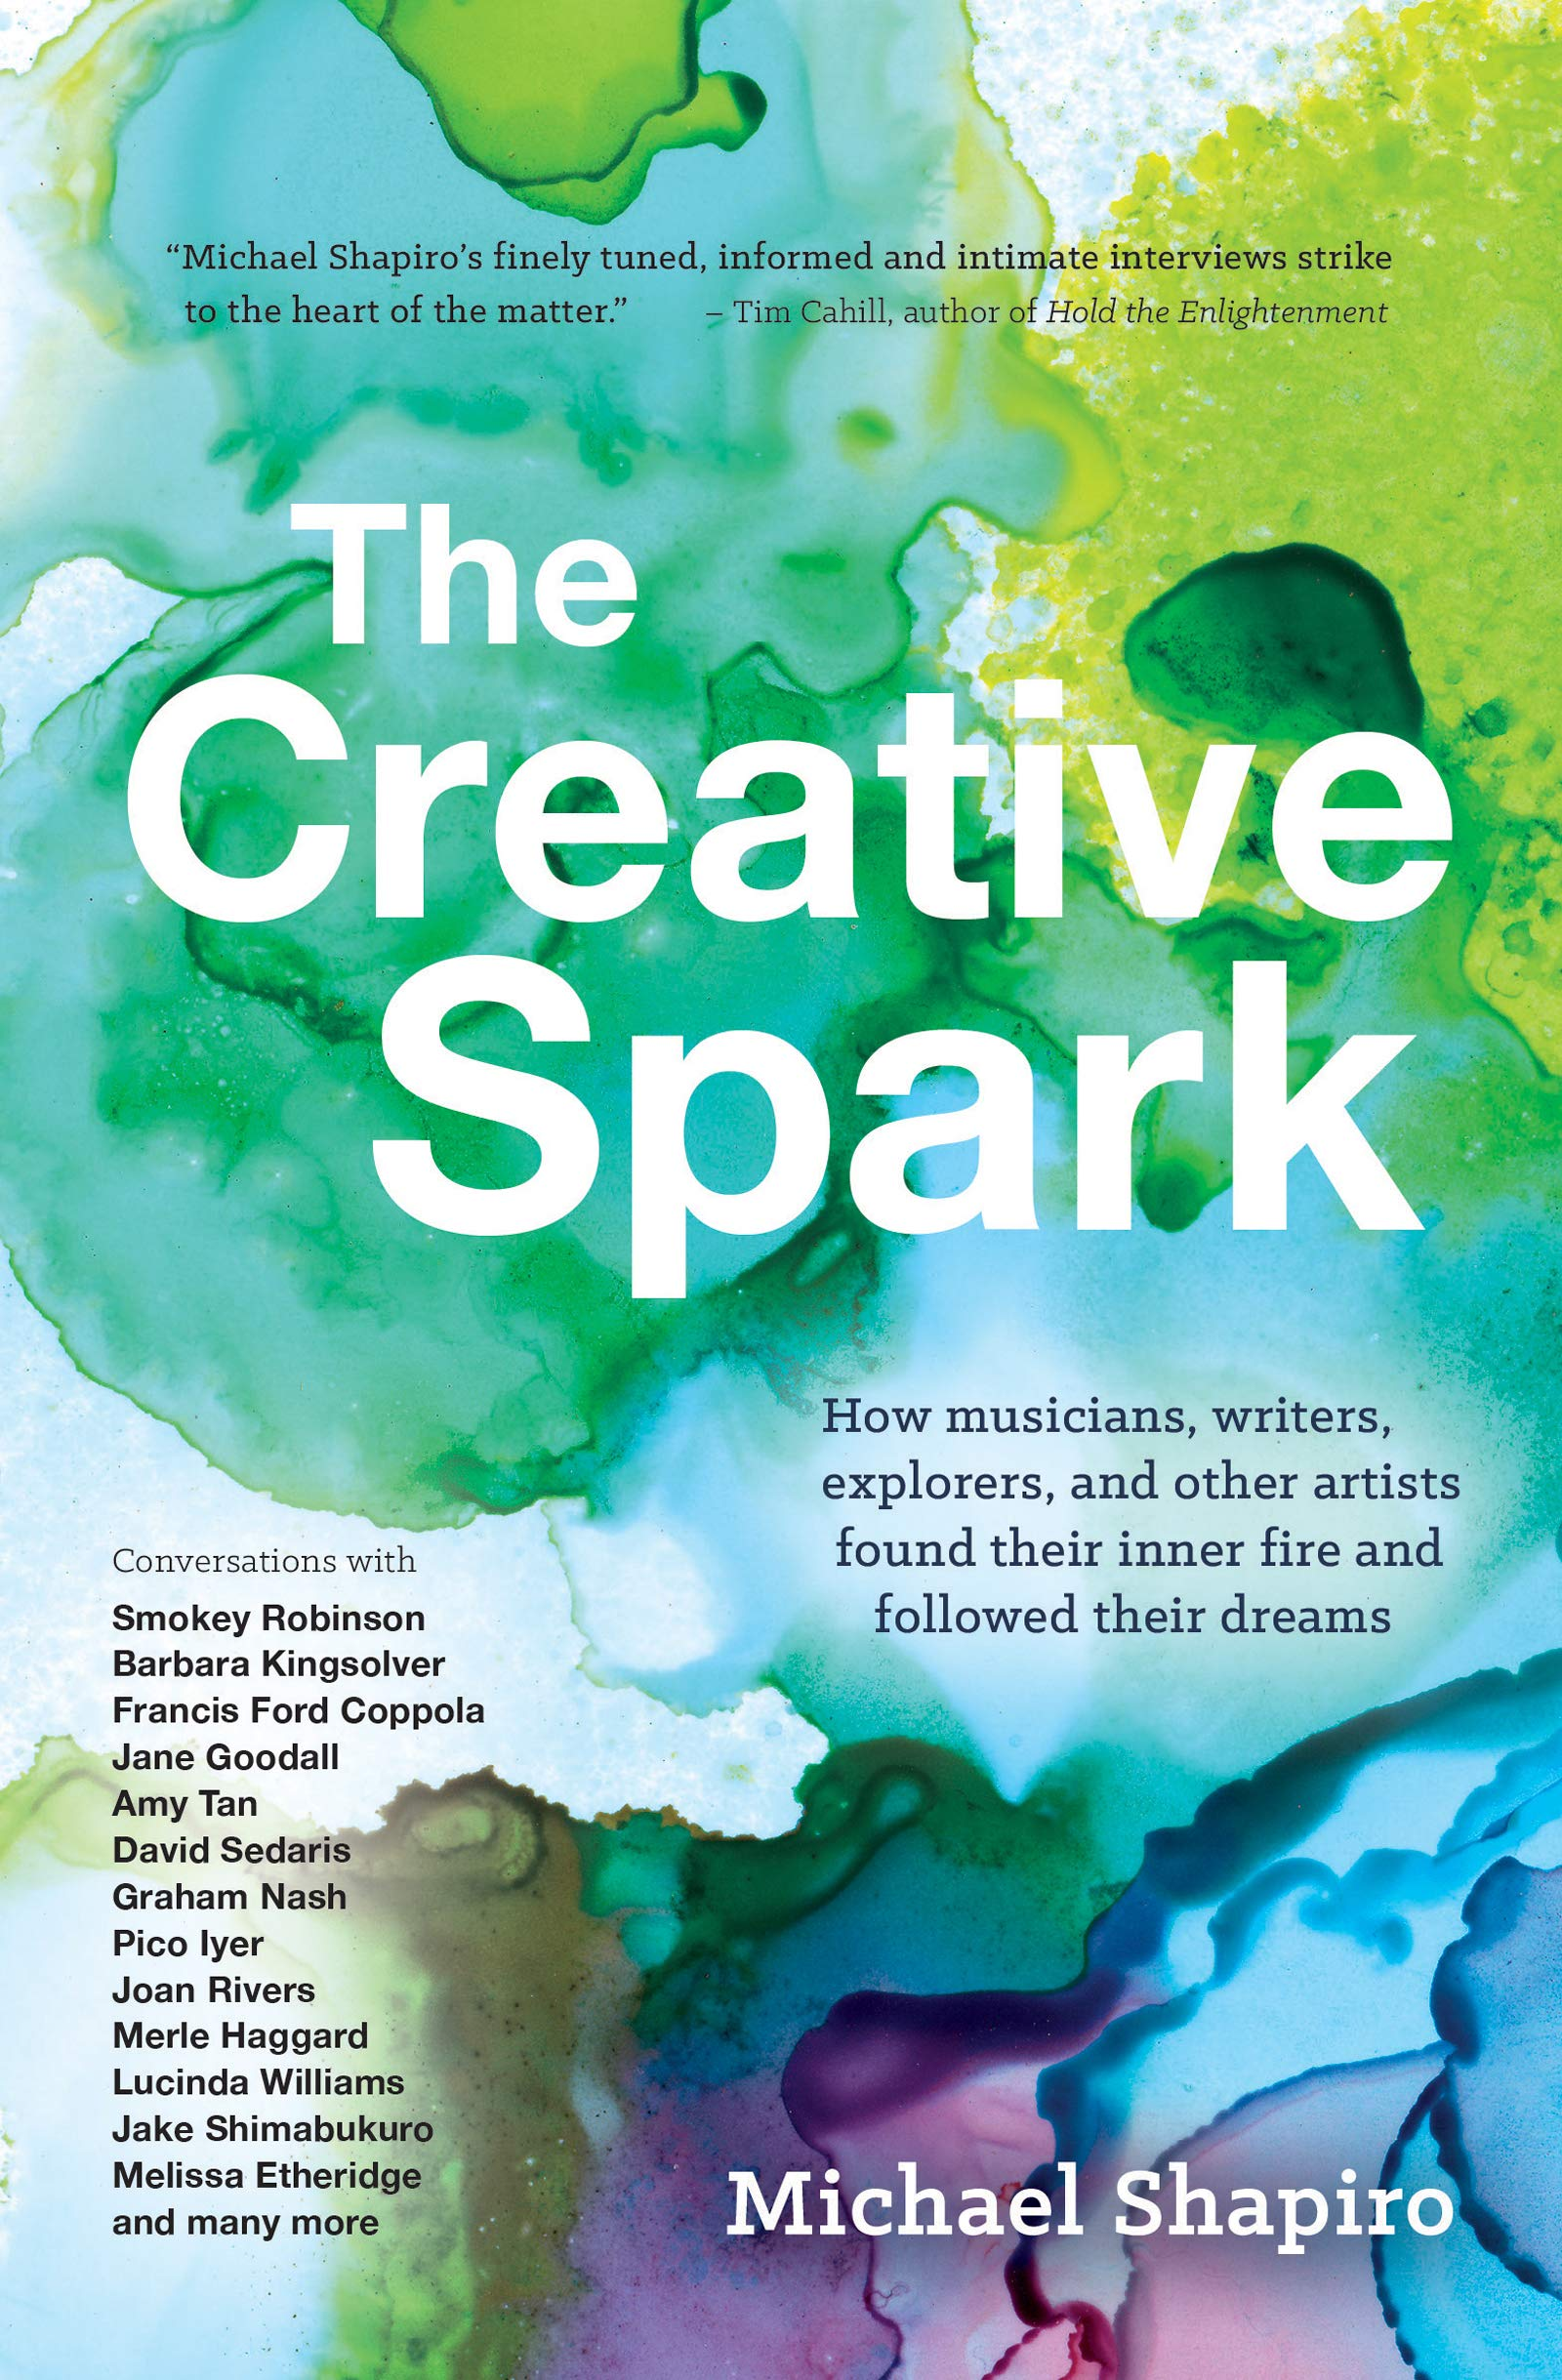 Download The Creative Spark: How Musicians, Writers, Explorers, And Other Artists Found Their Inner Fire And Followed Their Dreams 